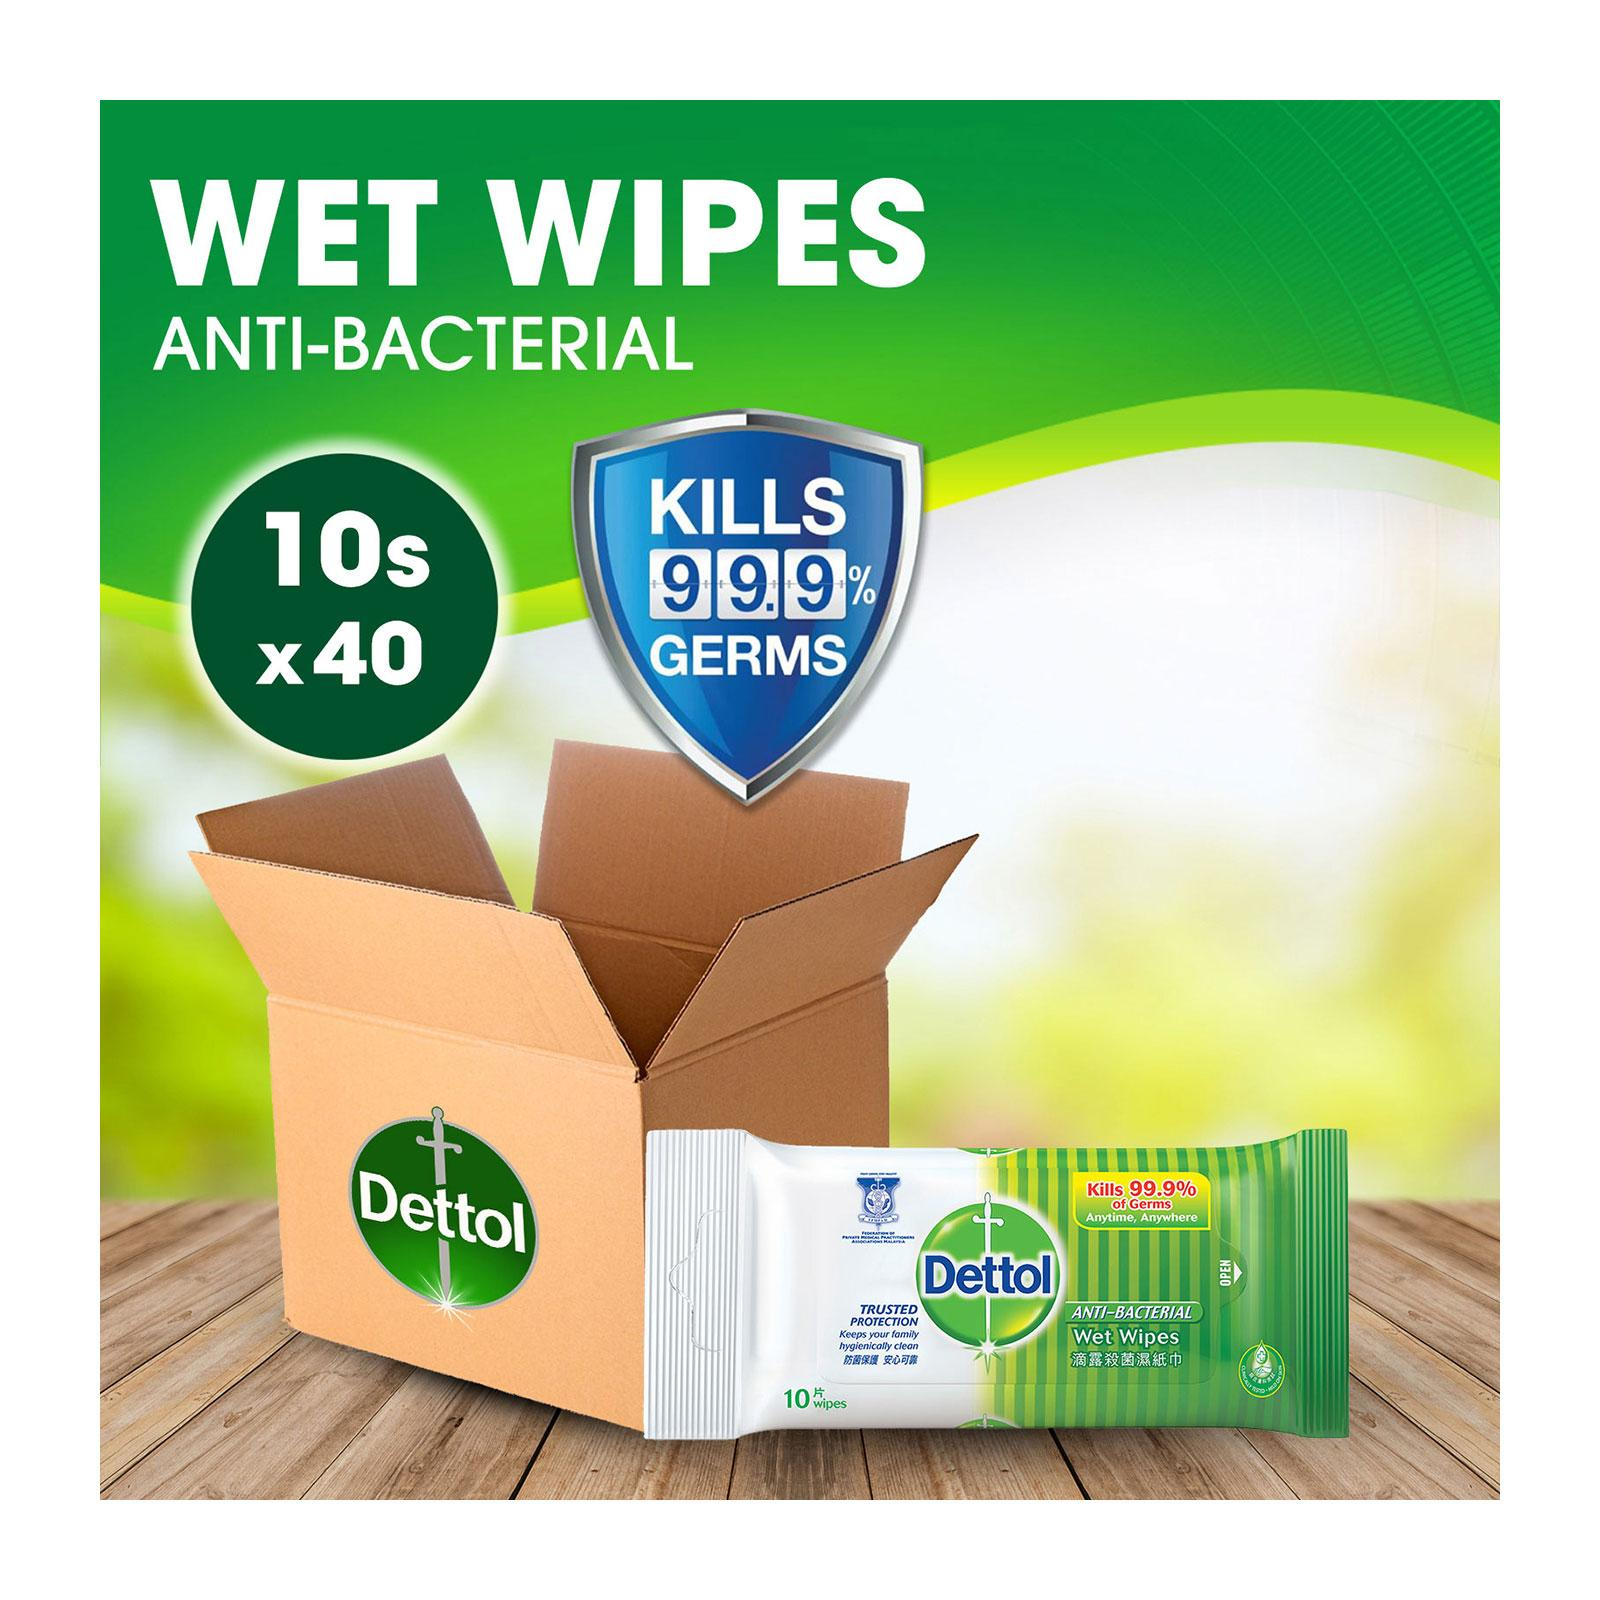 Dettol Antibacterial Wet Wipes 10s - 40 pack per Carton